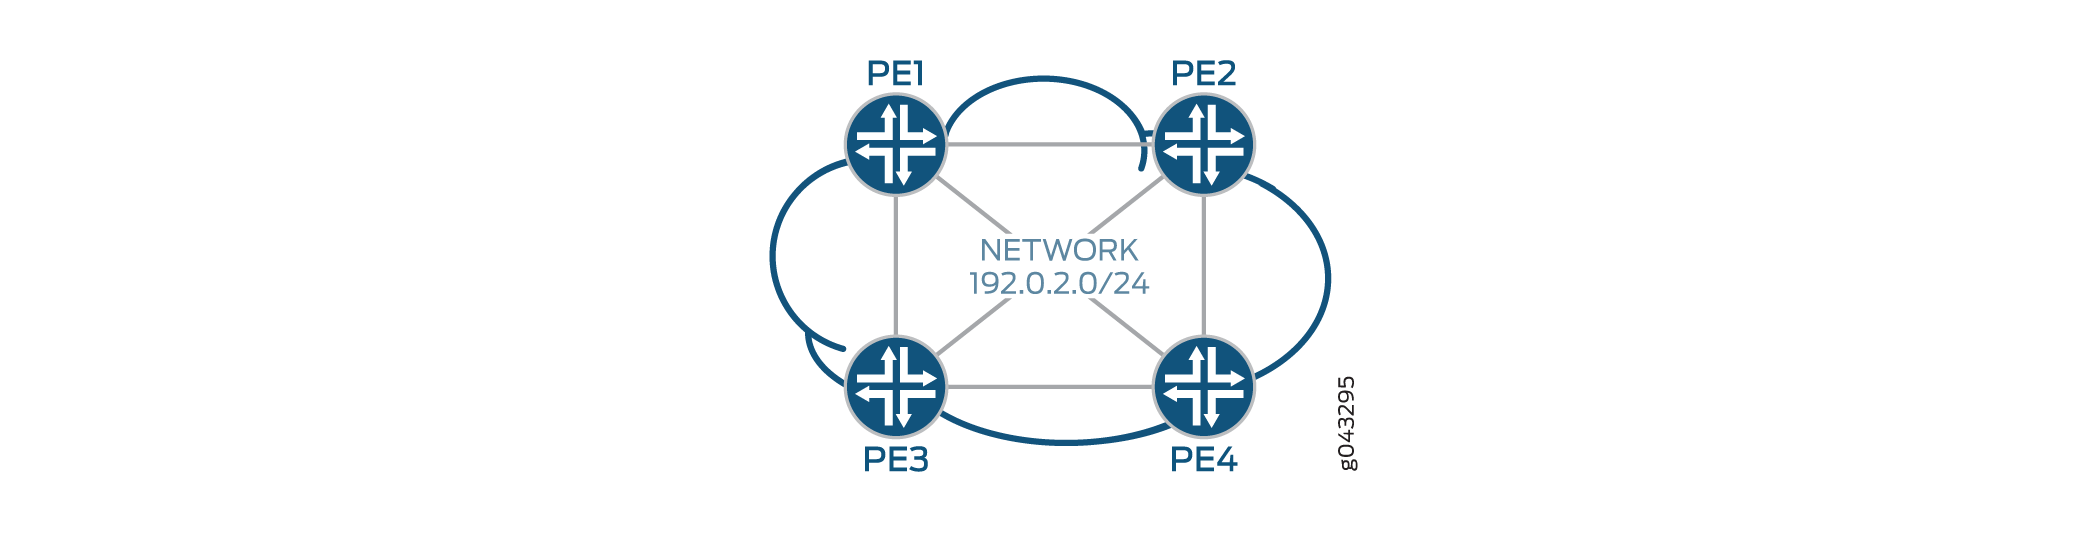 Service Provider Network with PE Routers